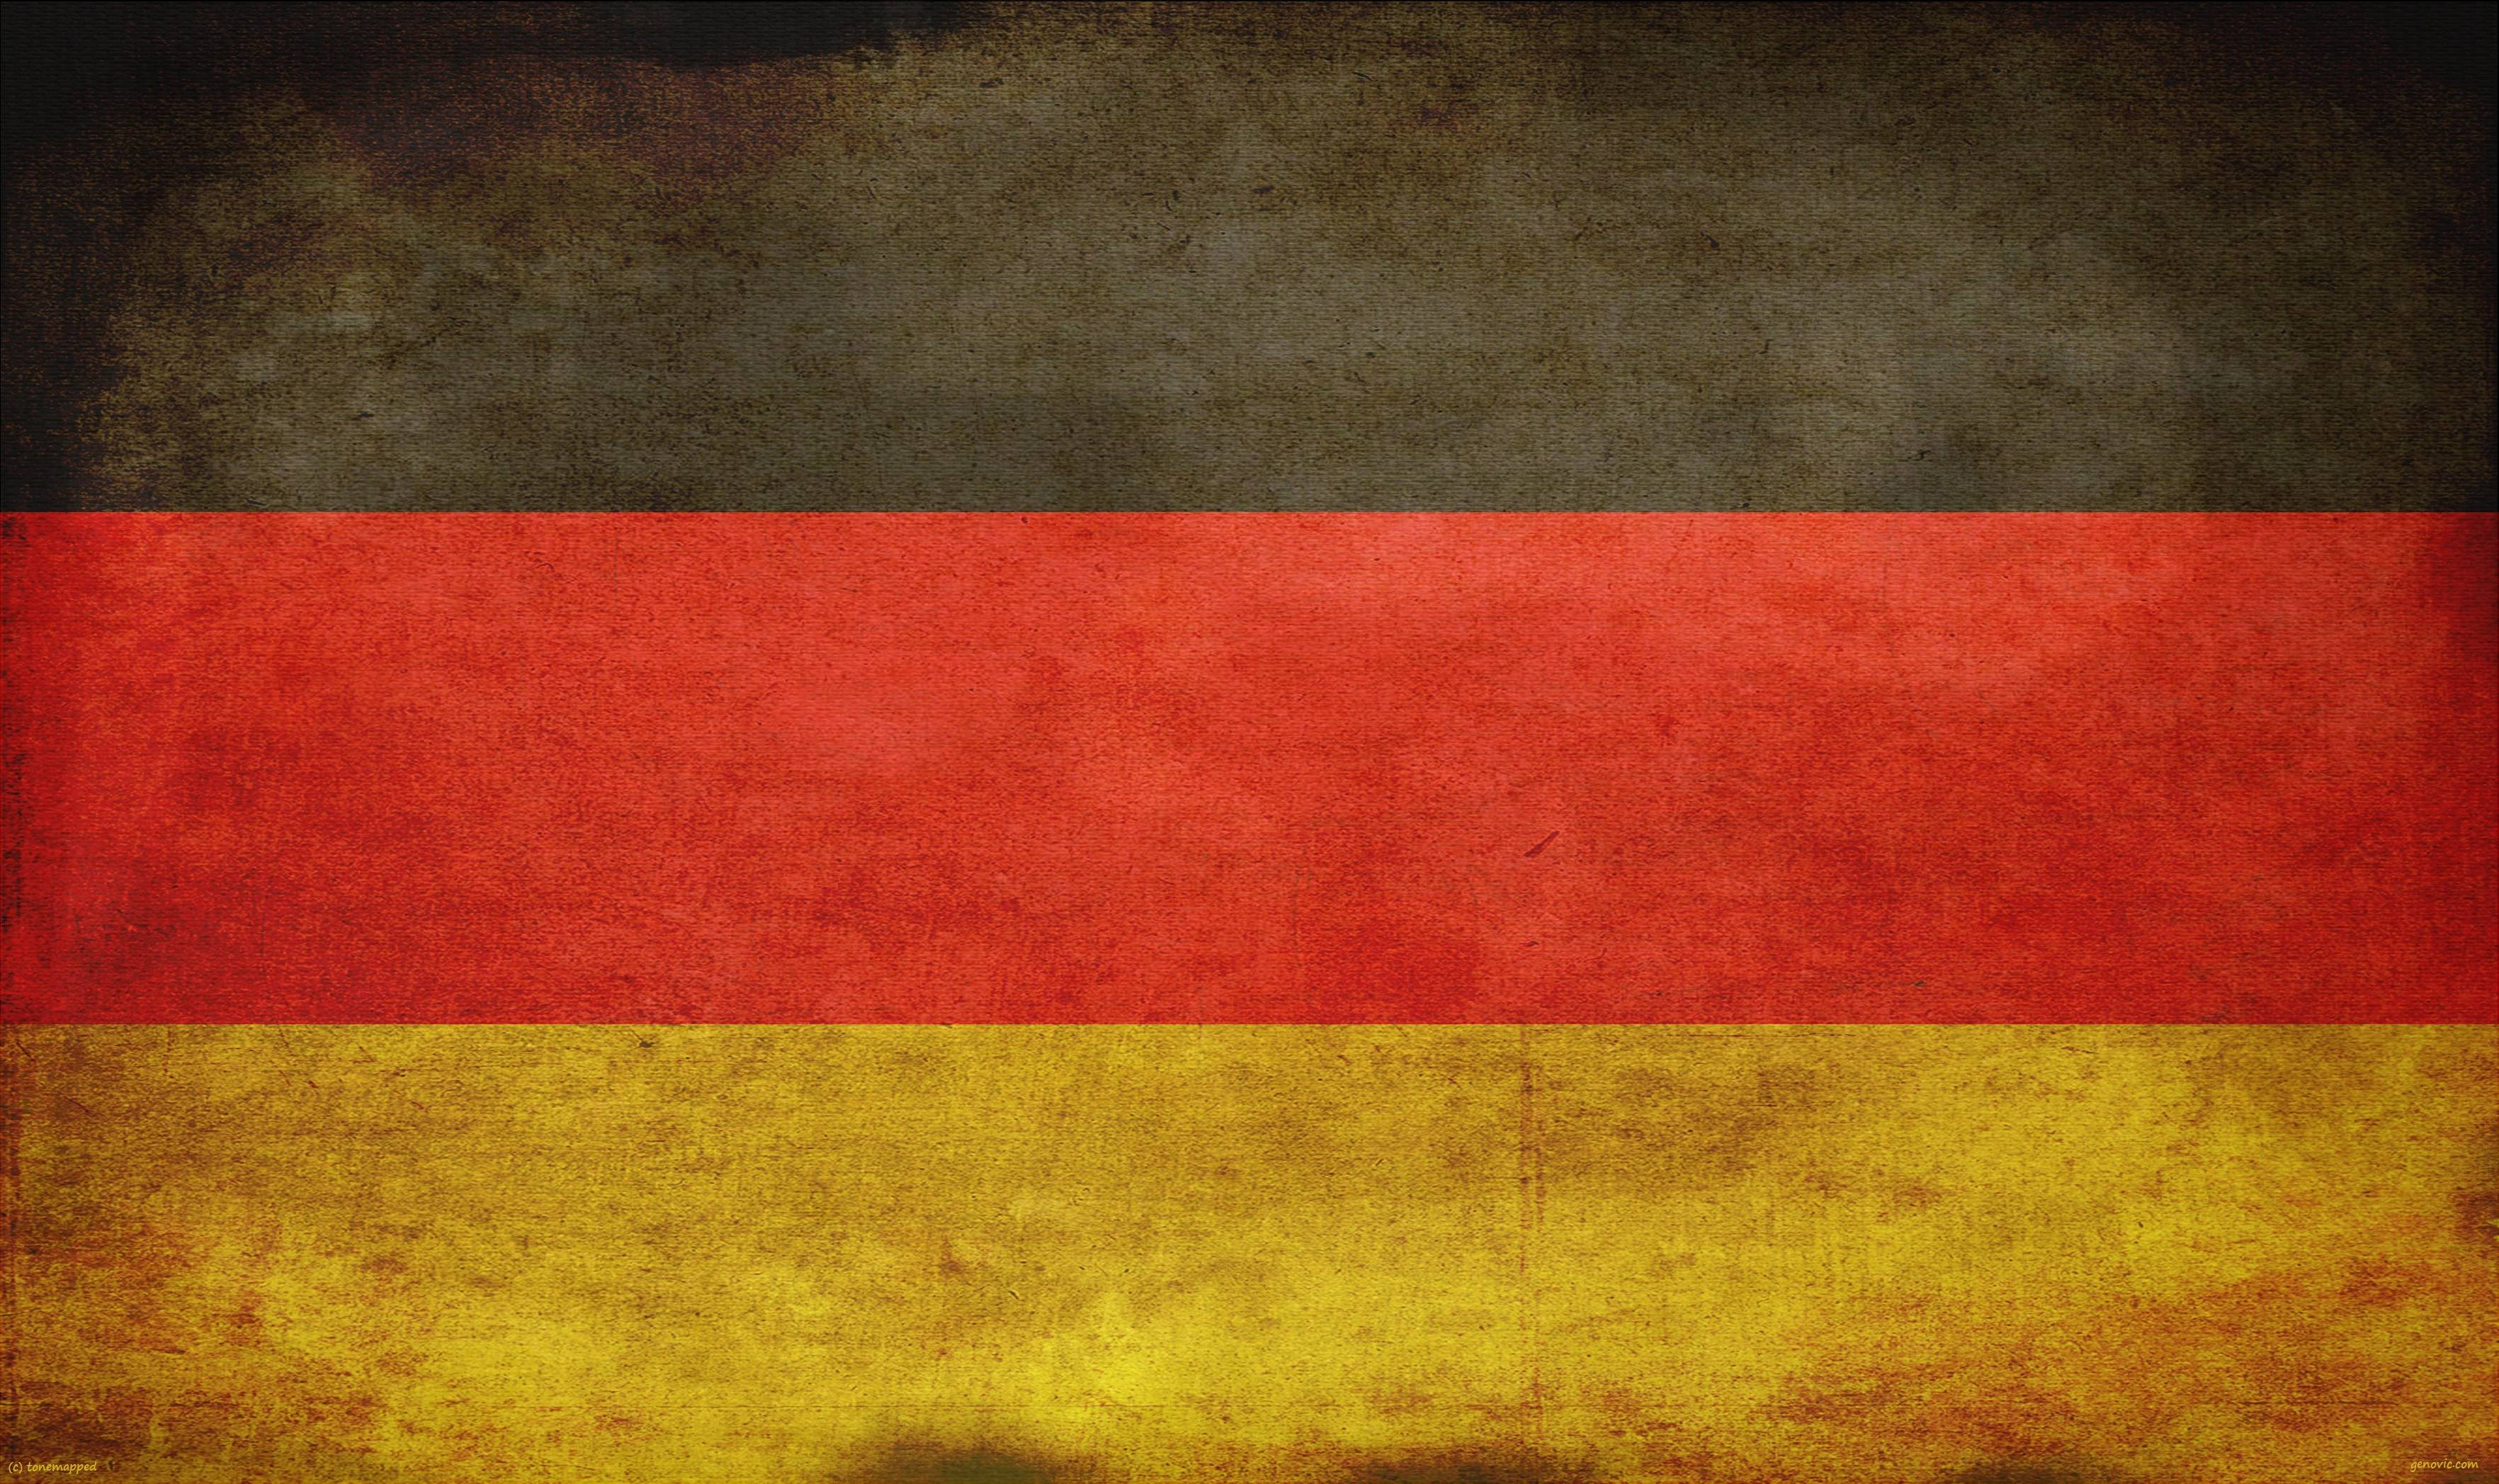 deutschland flag wallpaper - photo #11